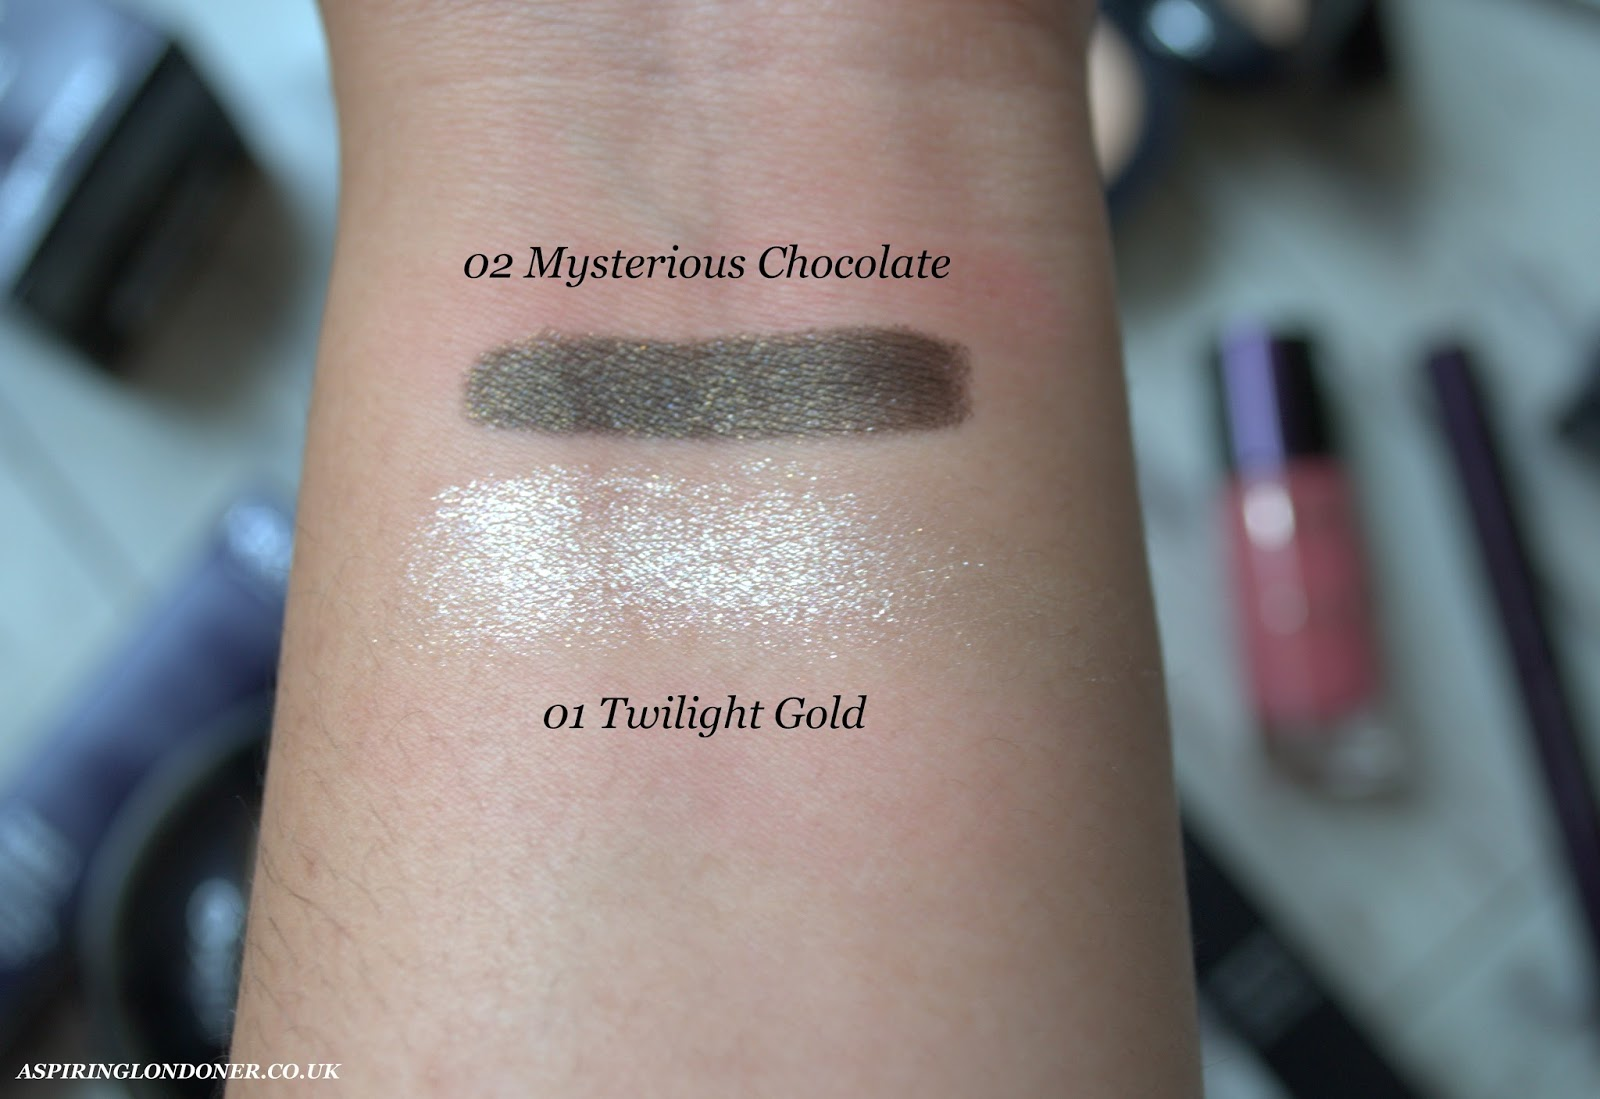 Kiko Midnight Siren Collection Cream Highlighter Moon Shadow Review Swatch - Aspiring Londoner